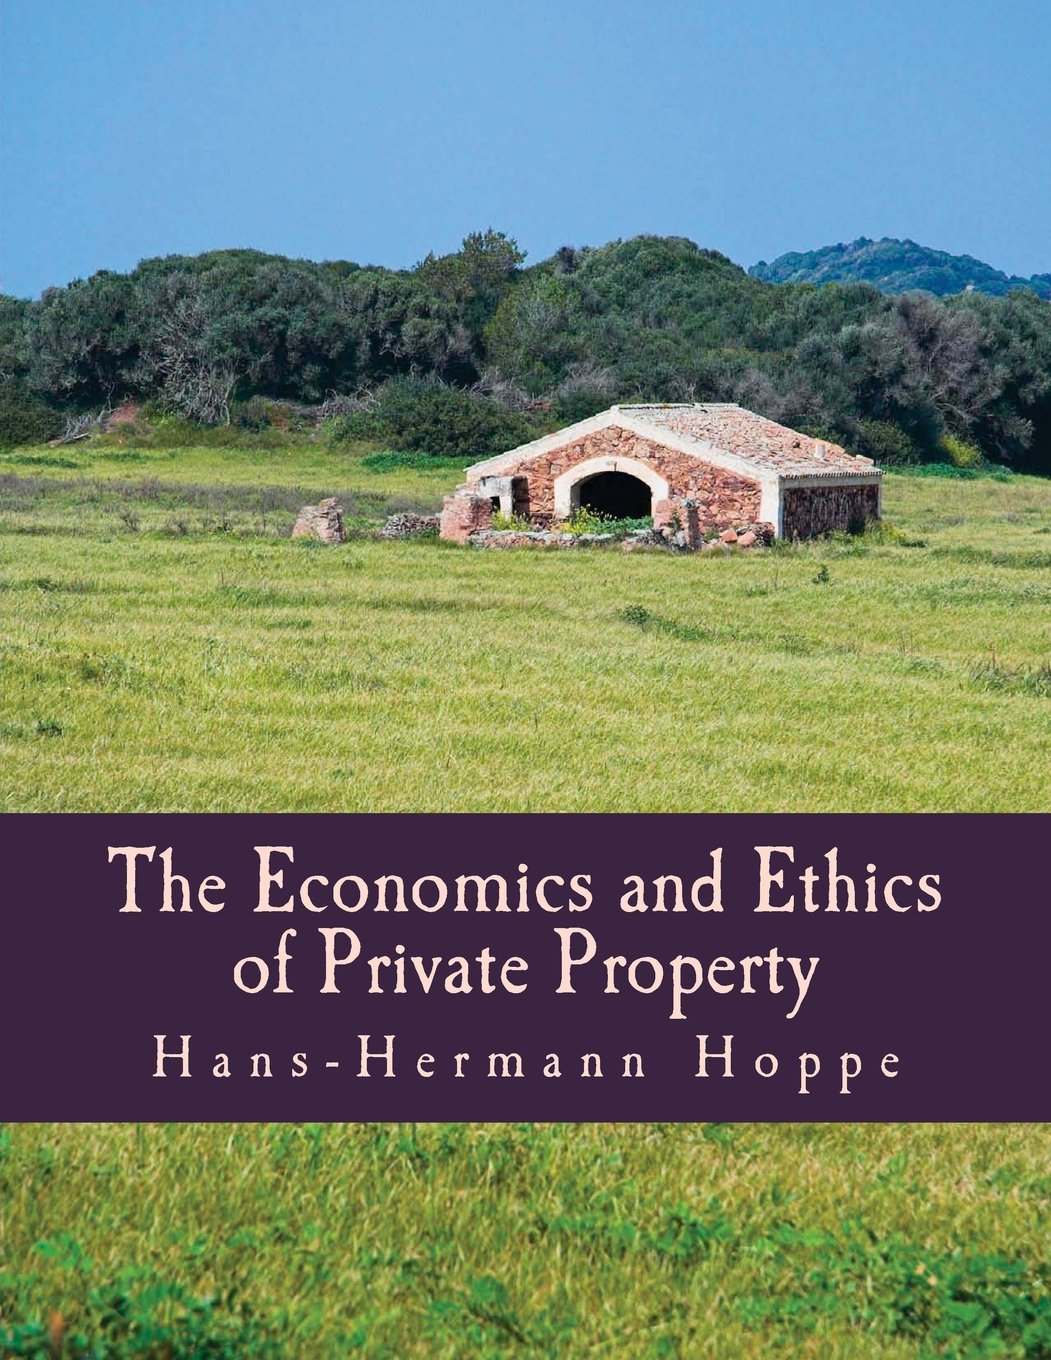 The Economics and Ethics of Private Property (Large Print Edition) ePub fb2 ebook